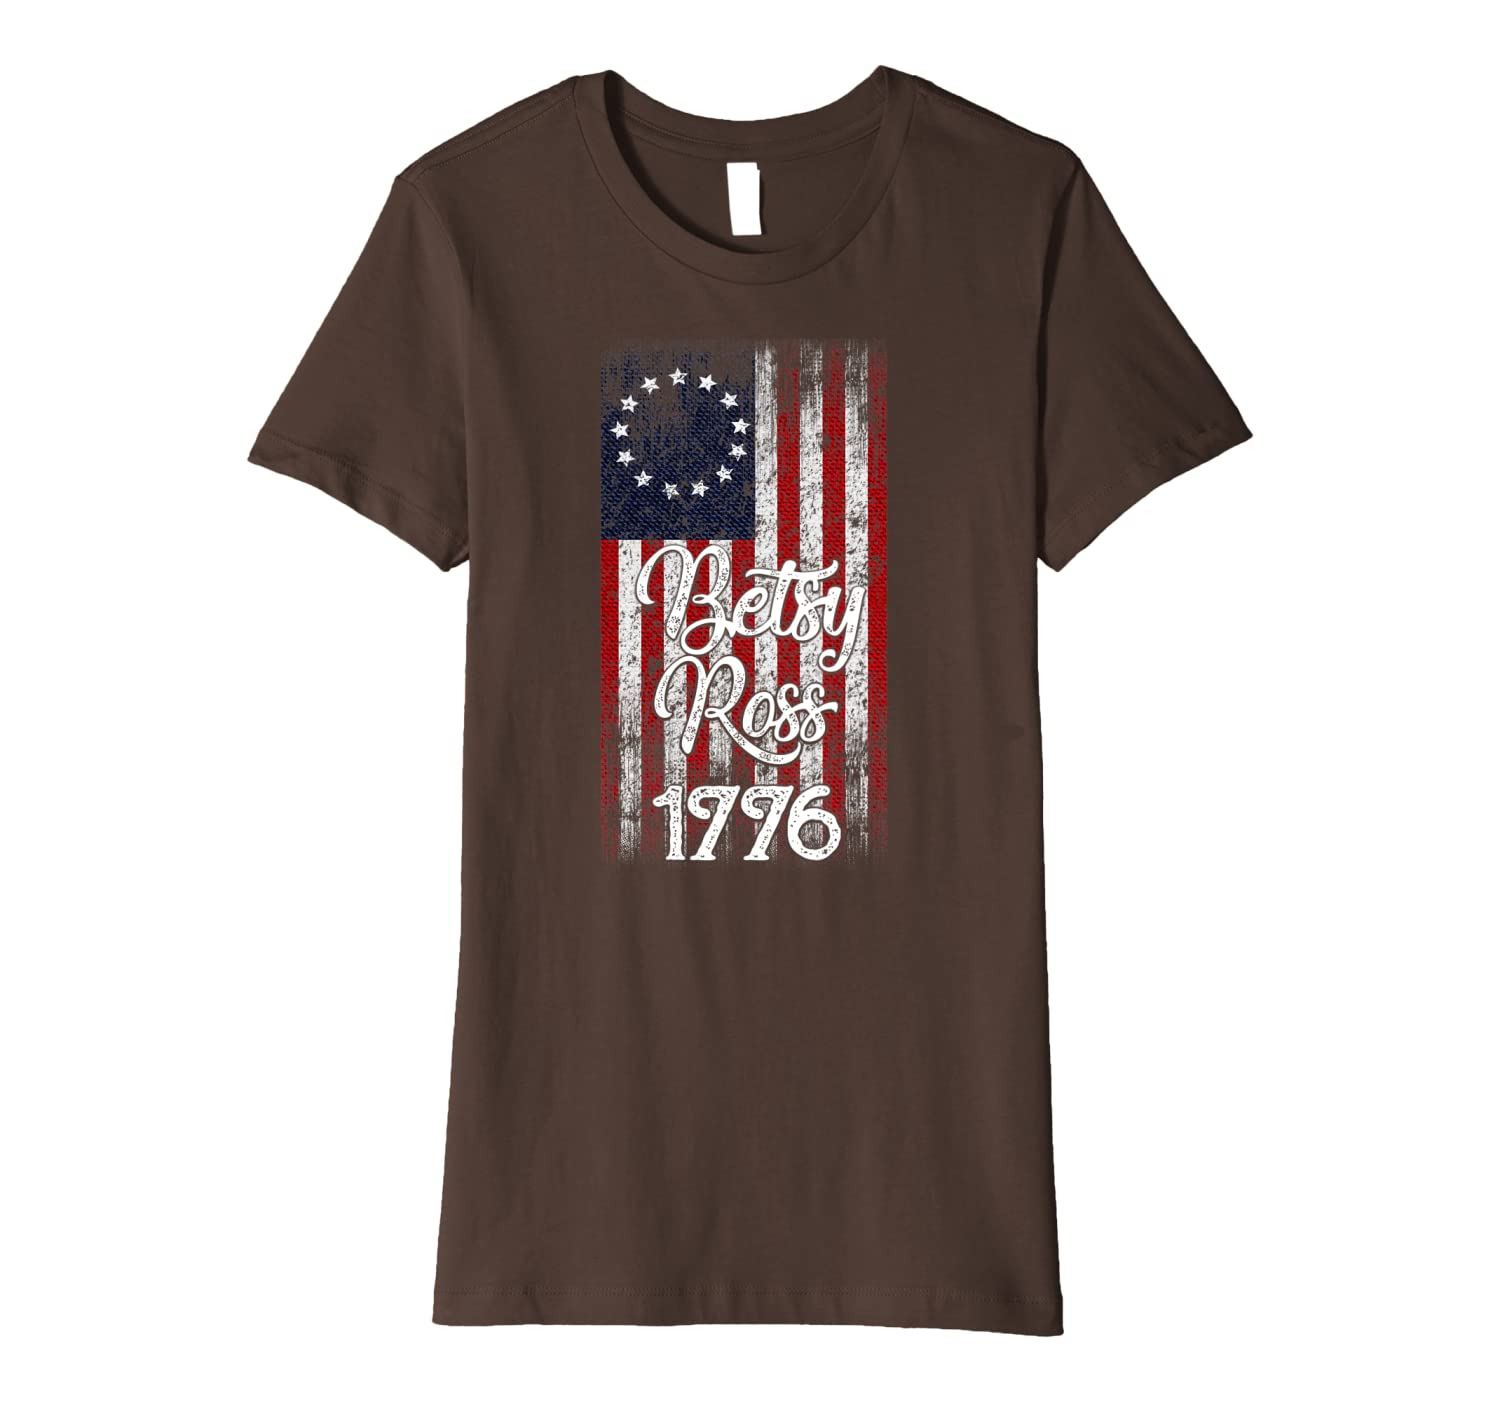 13 Colonies Betsy Ross First us Flag USA American Vintage Premium T-Shirt